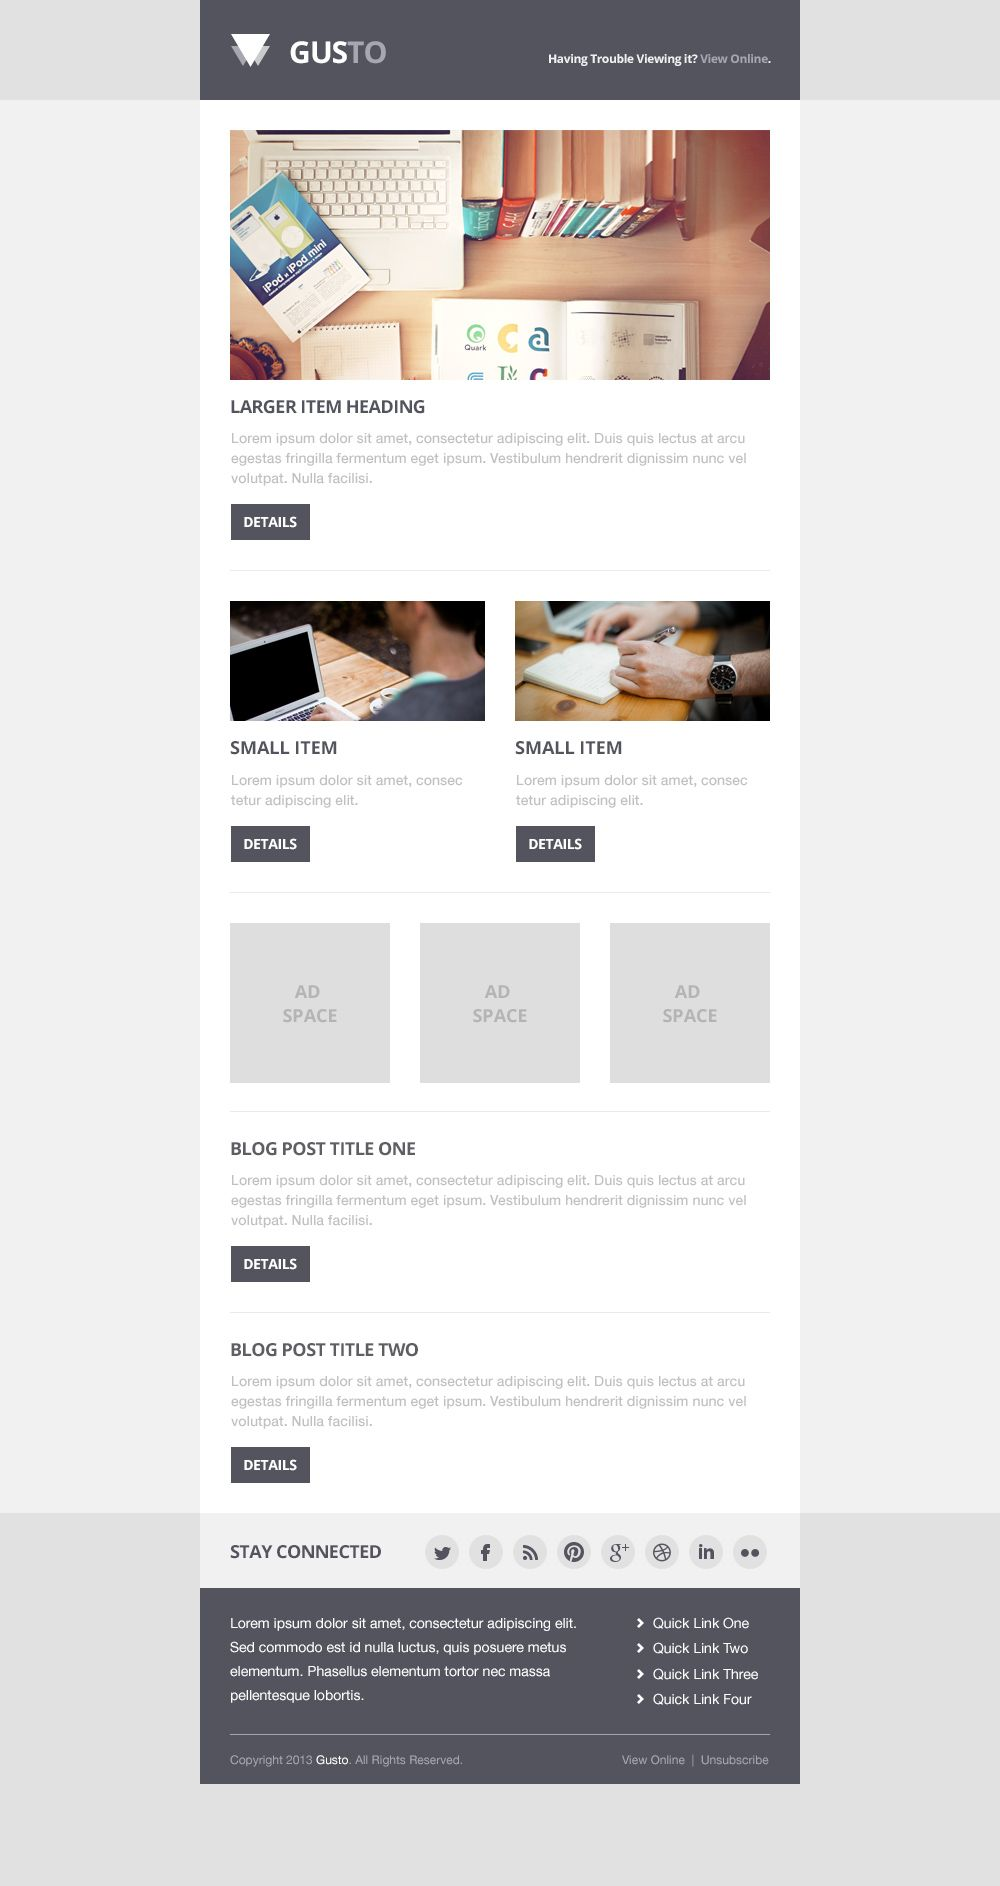 Gusto Email PSD Template | PSD Freebies | Pinterest | Psd ...